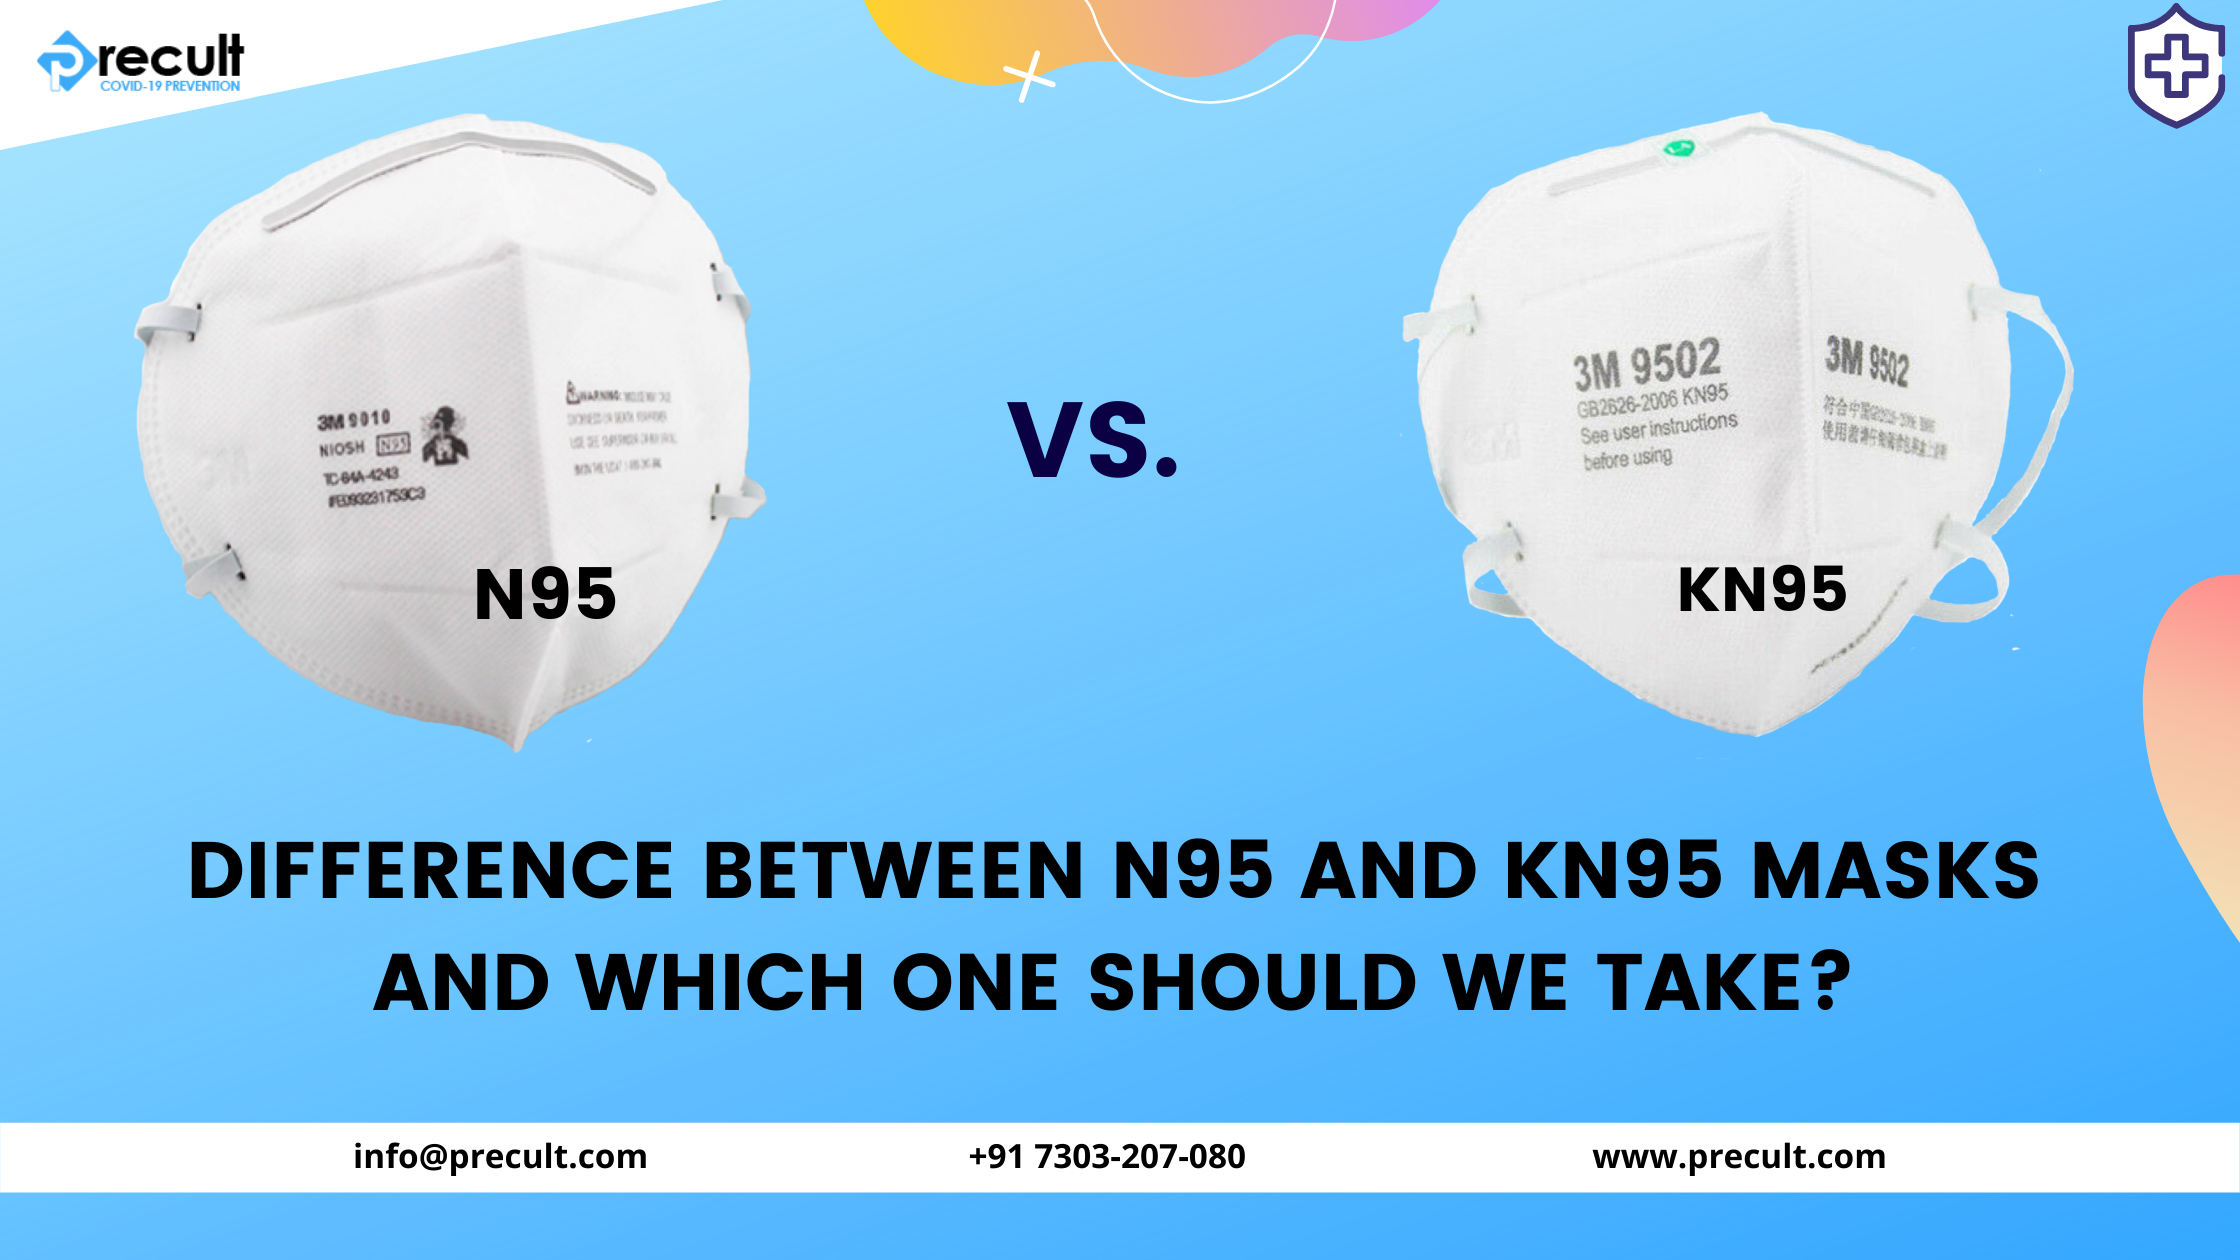 Difference Between N95 And KN95 Masks And Which One Should We Take?